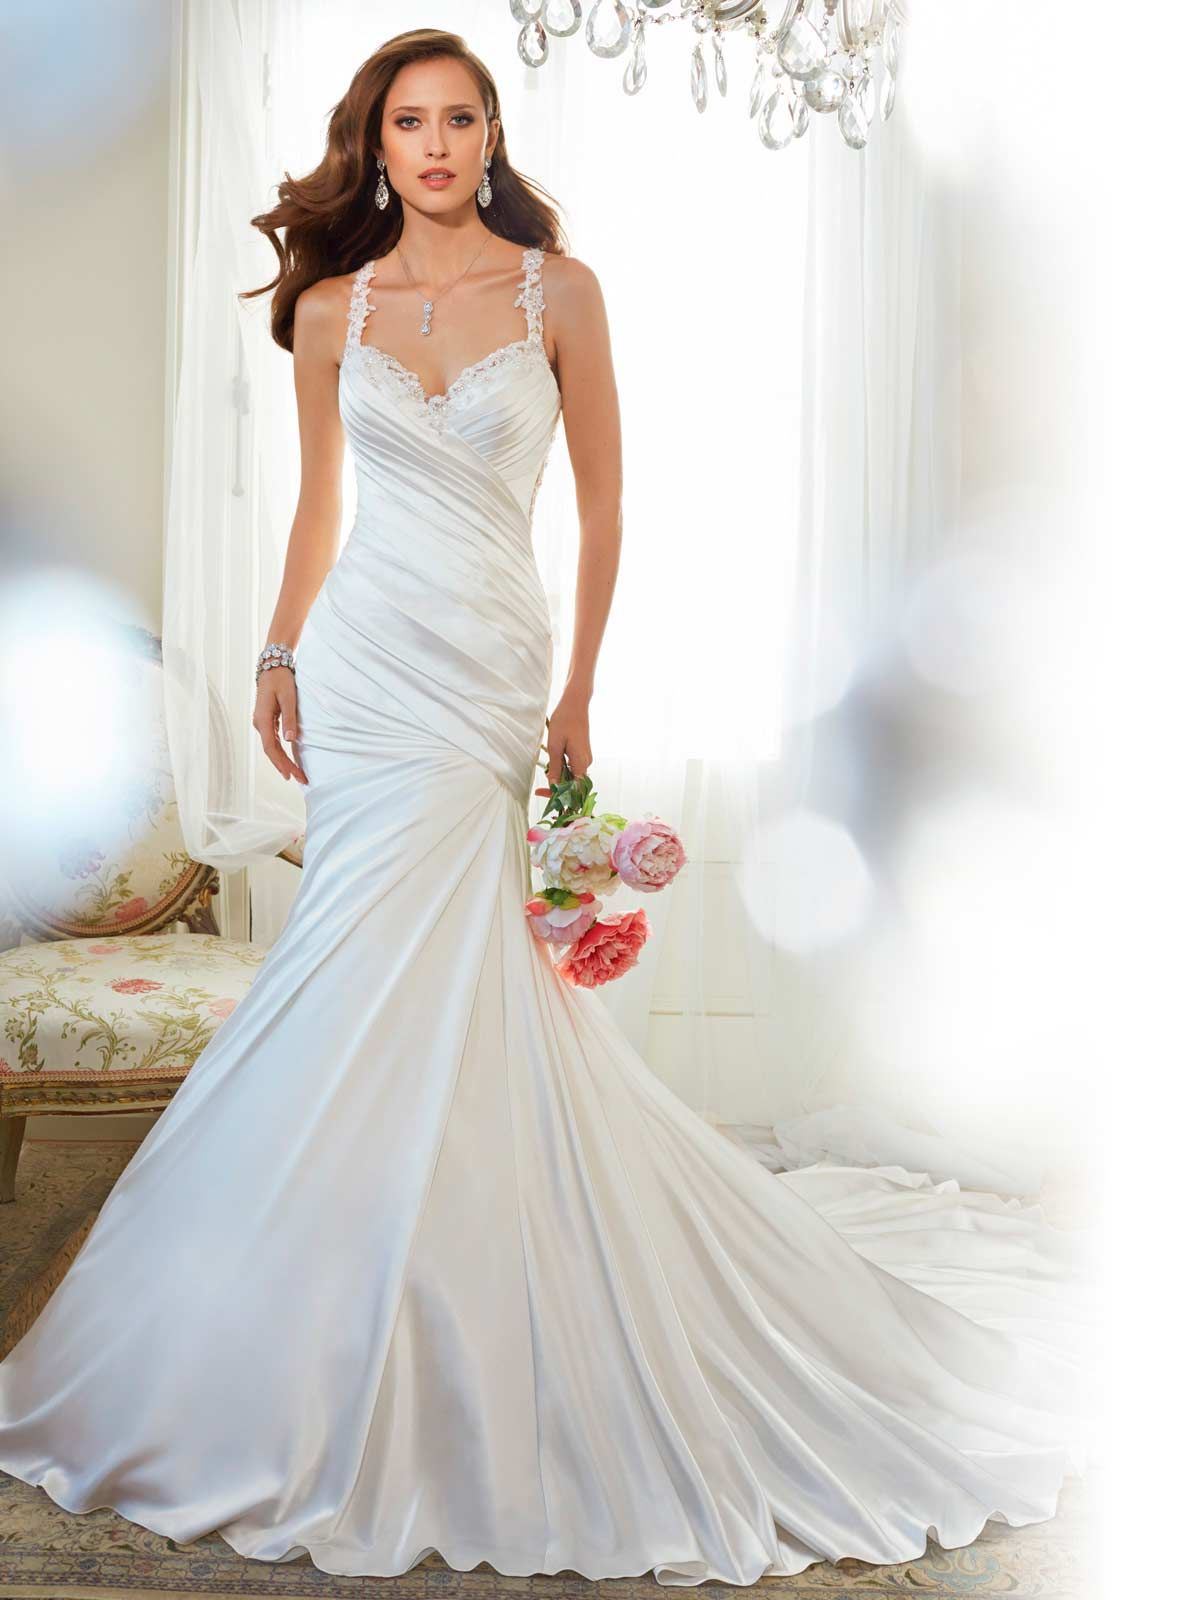 Sophia tolli y11566 sophia tolli corella wedding dresses glamorous sophia tolli wedding dresses 2015 modwedding the back of this dress is so nice ombrellifo Image collections